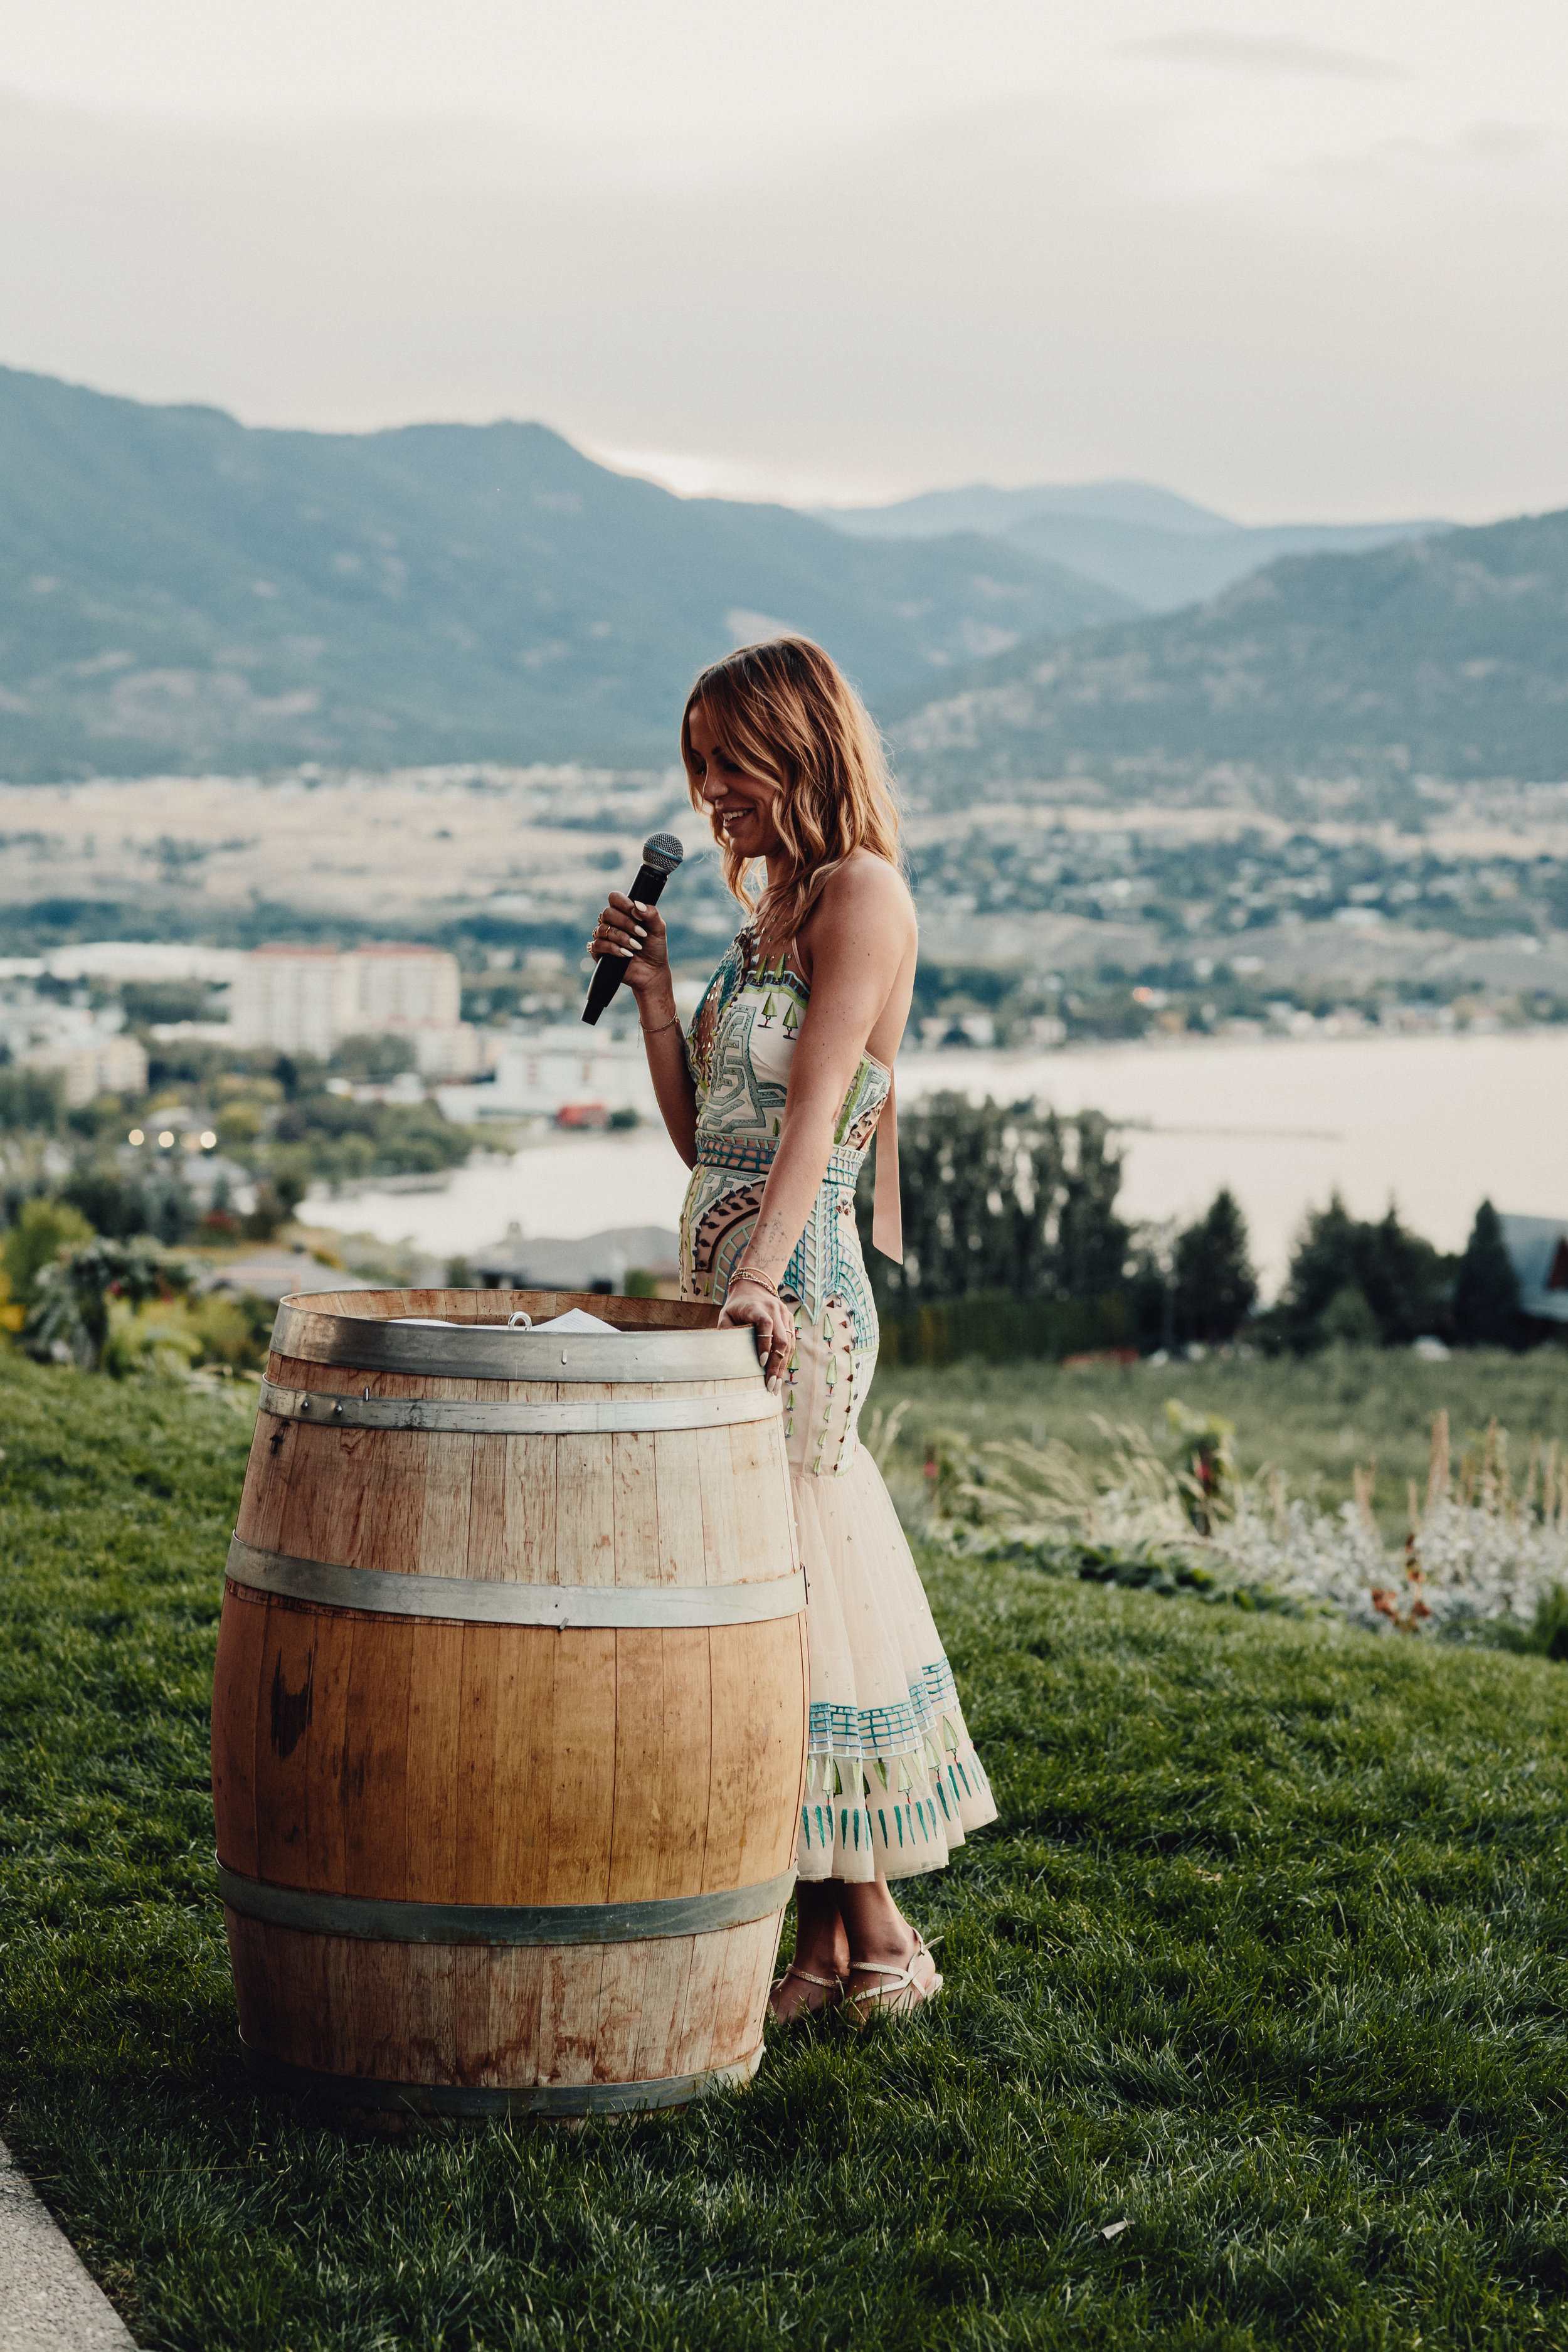 Poplar-grove-wedding-photos-okanagan0110.JPG